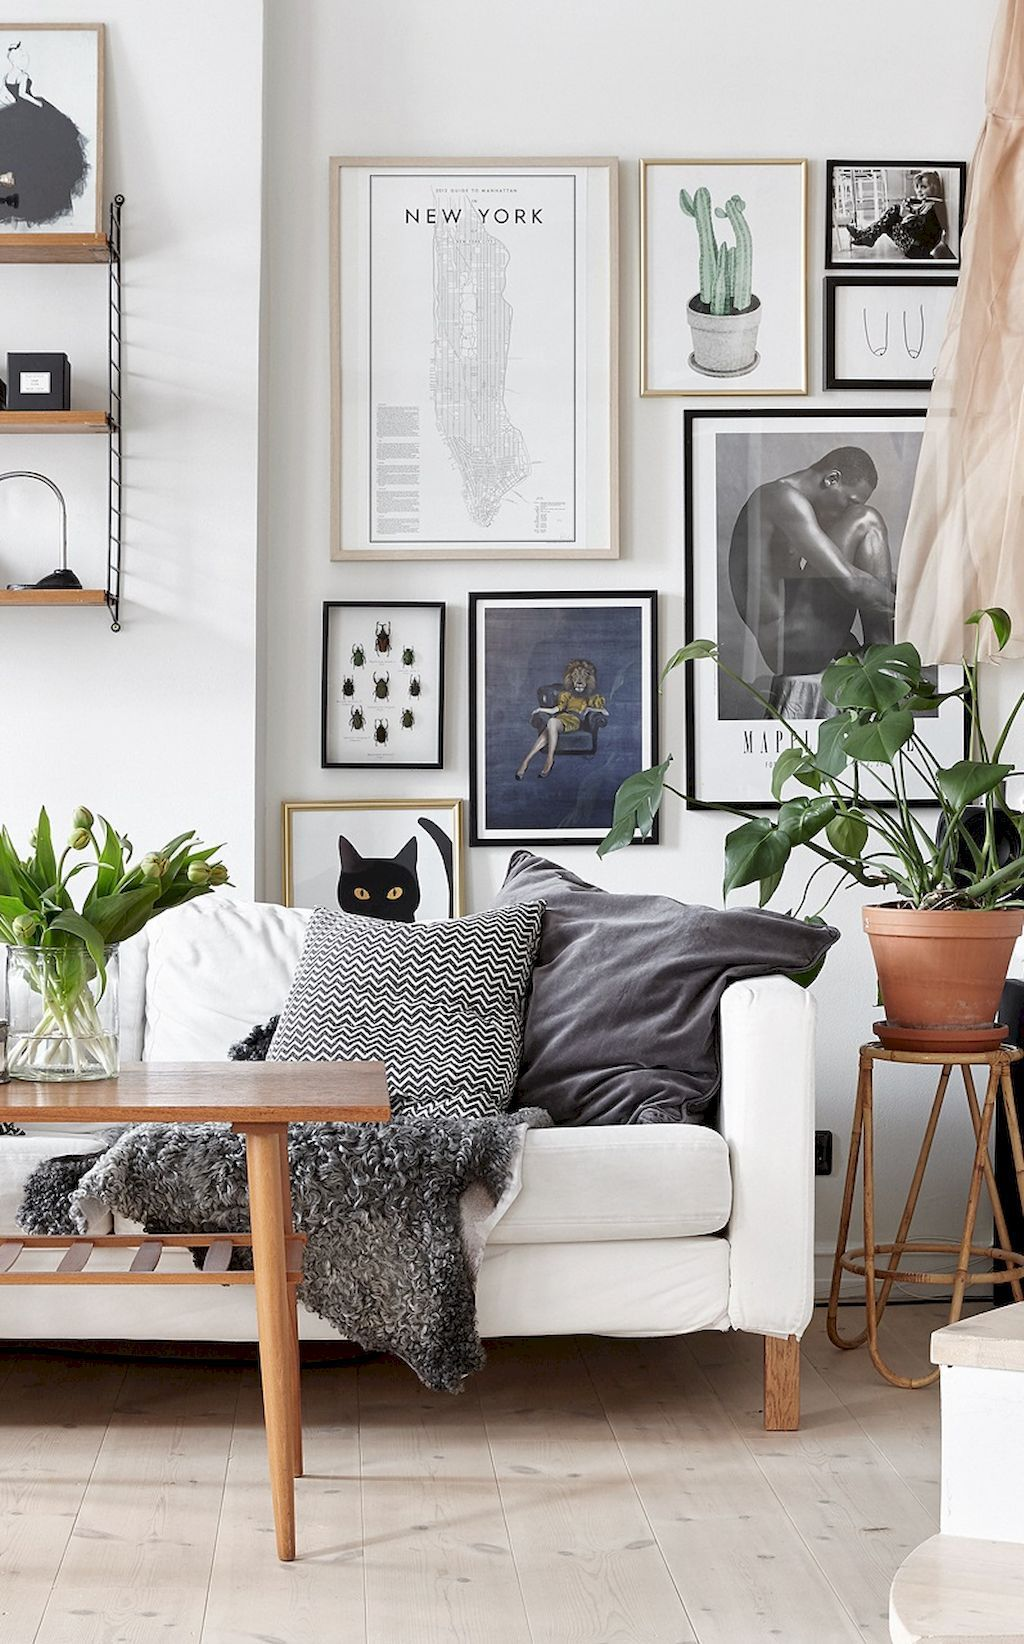 Cool Apartment Studio Decorating Ideas On A Budget 44